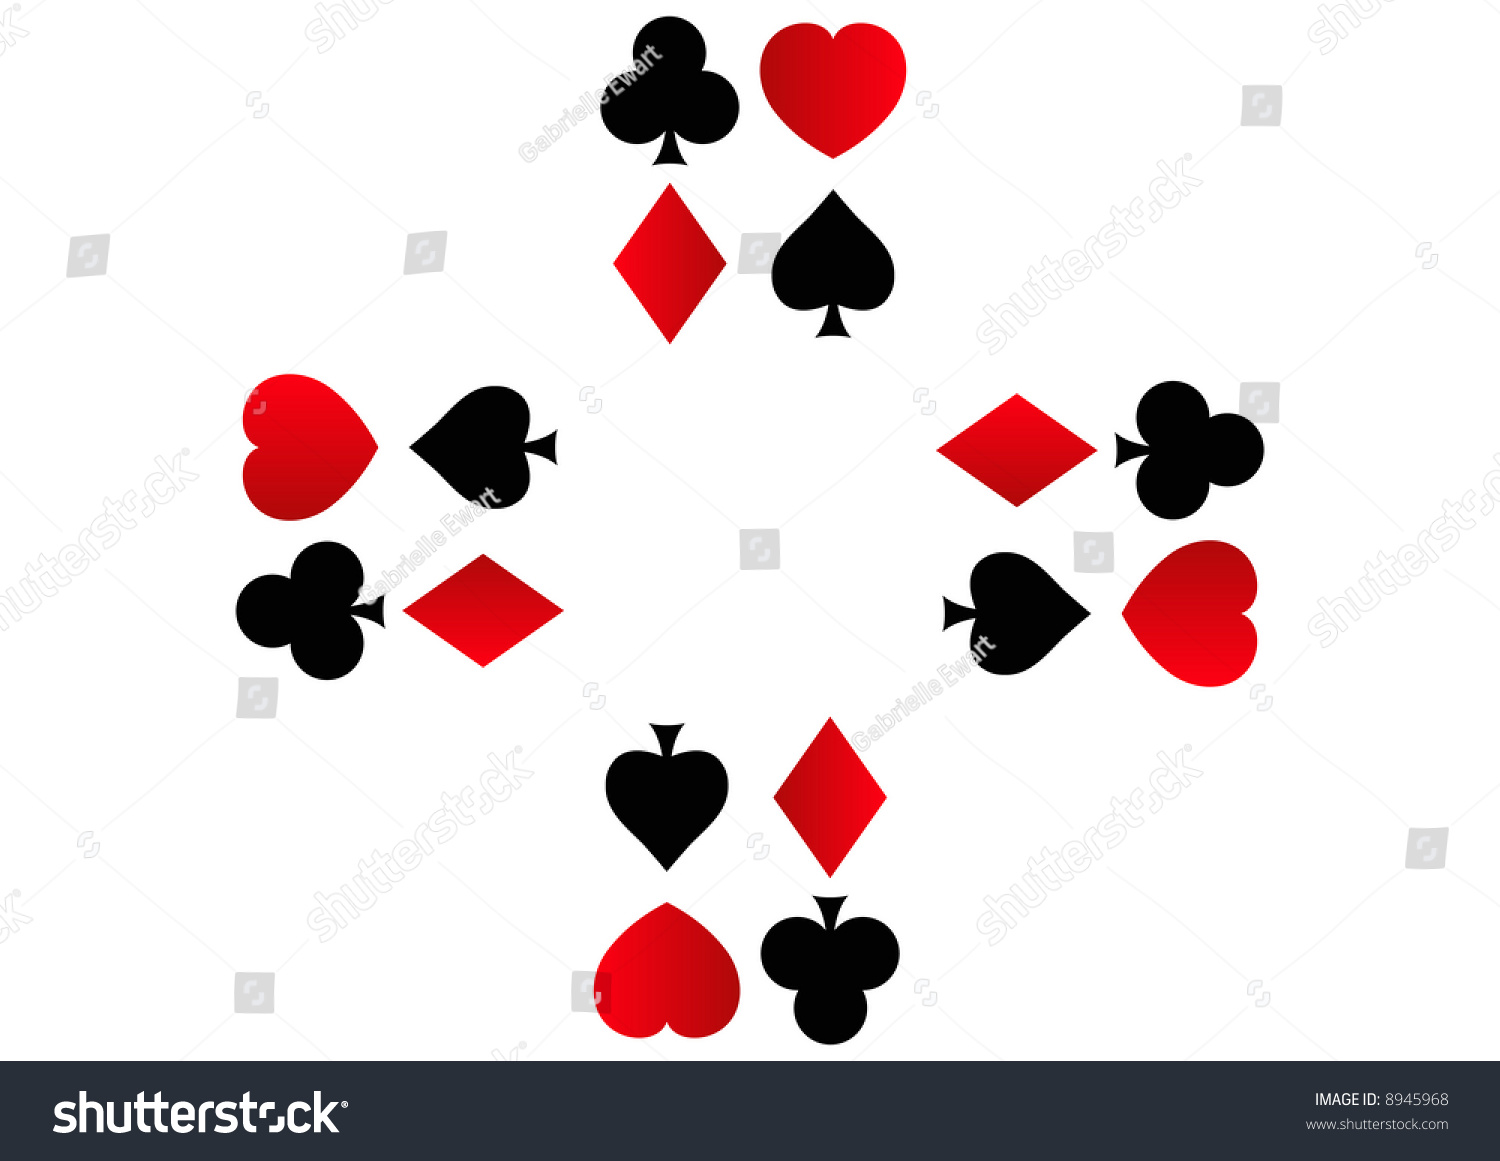 rows spades clubs hearts diamonds shapes stock illustration 8945968